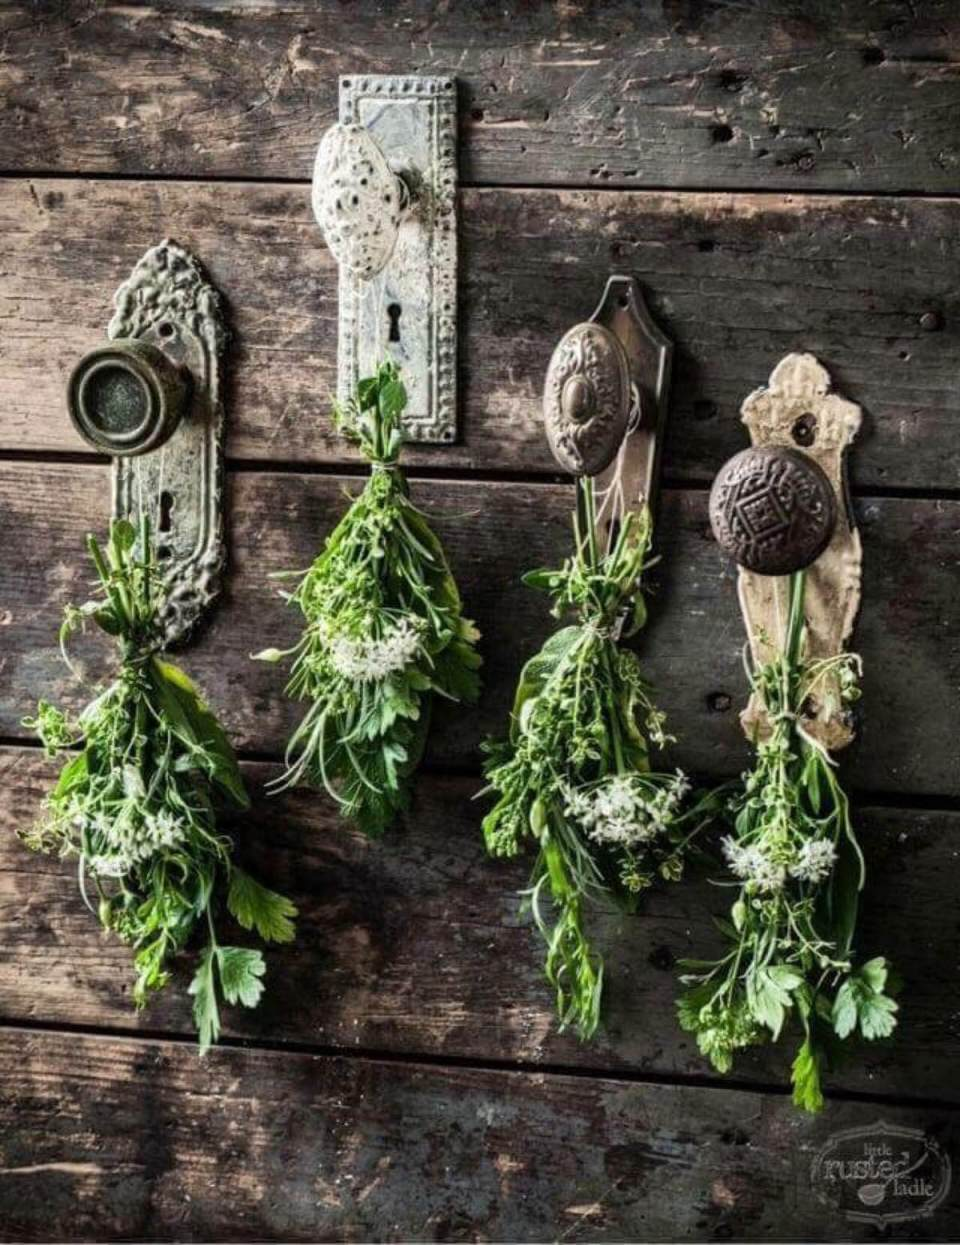 Vintage Garden Decor Ideas: Antique Doorknob Flower and Herb Drying Display